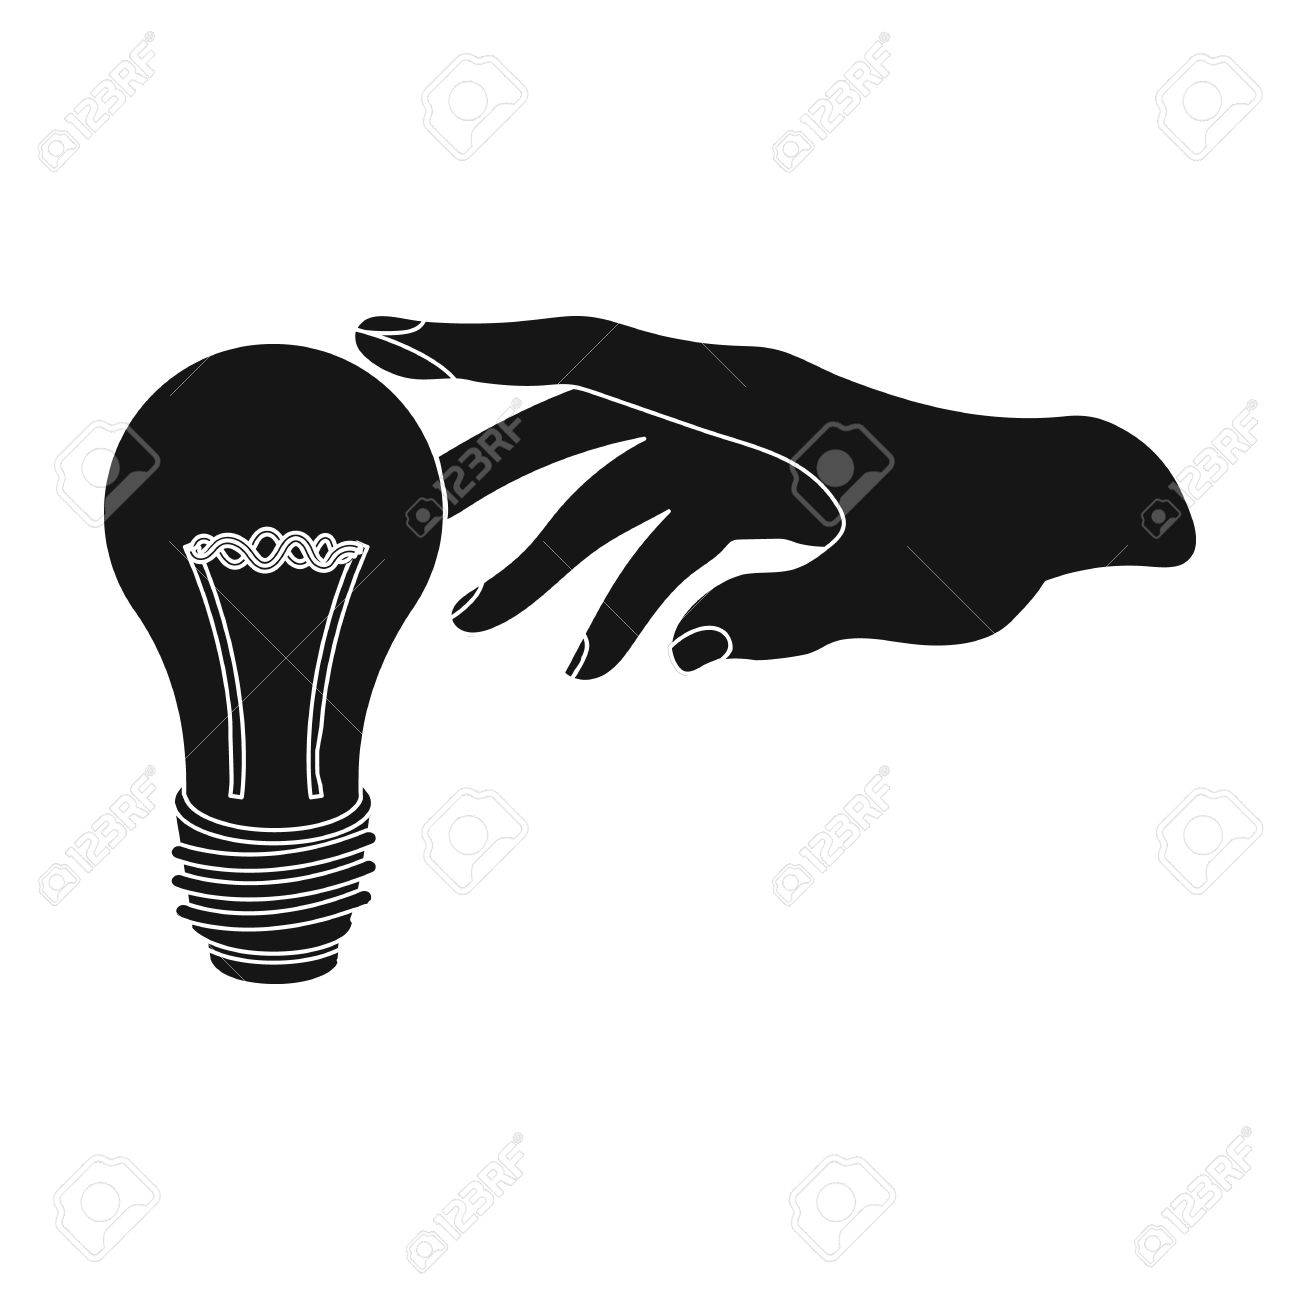 Replacement Of An Electric Bulb. Incandescent Lamp Single Icon ... for Incandescent Lamp Symbol  150ifm